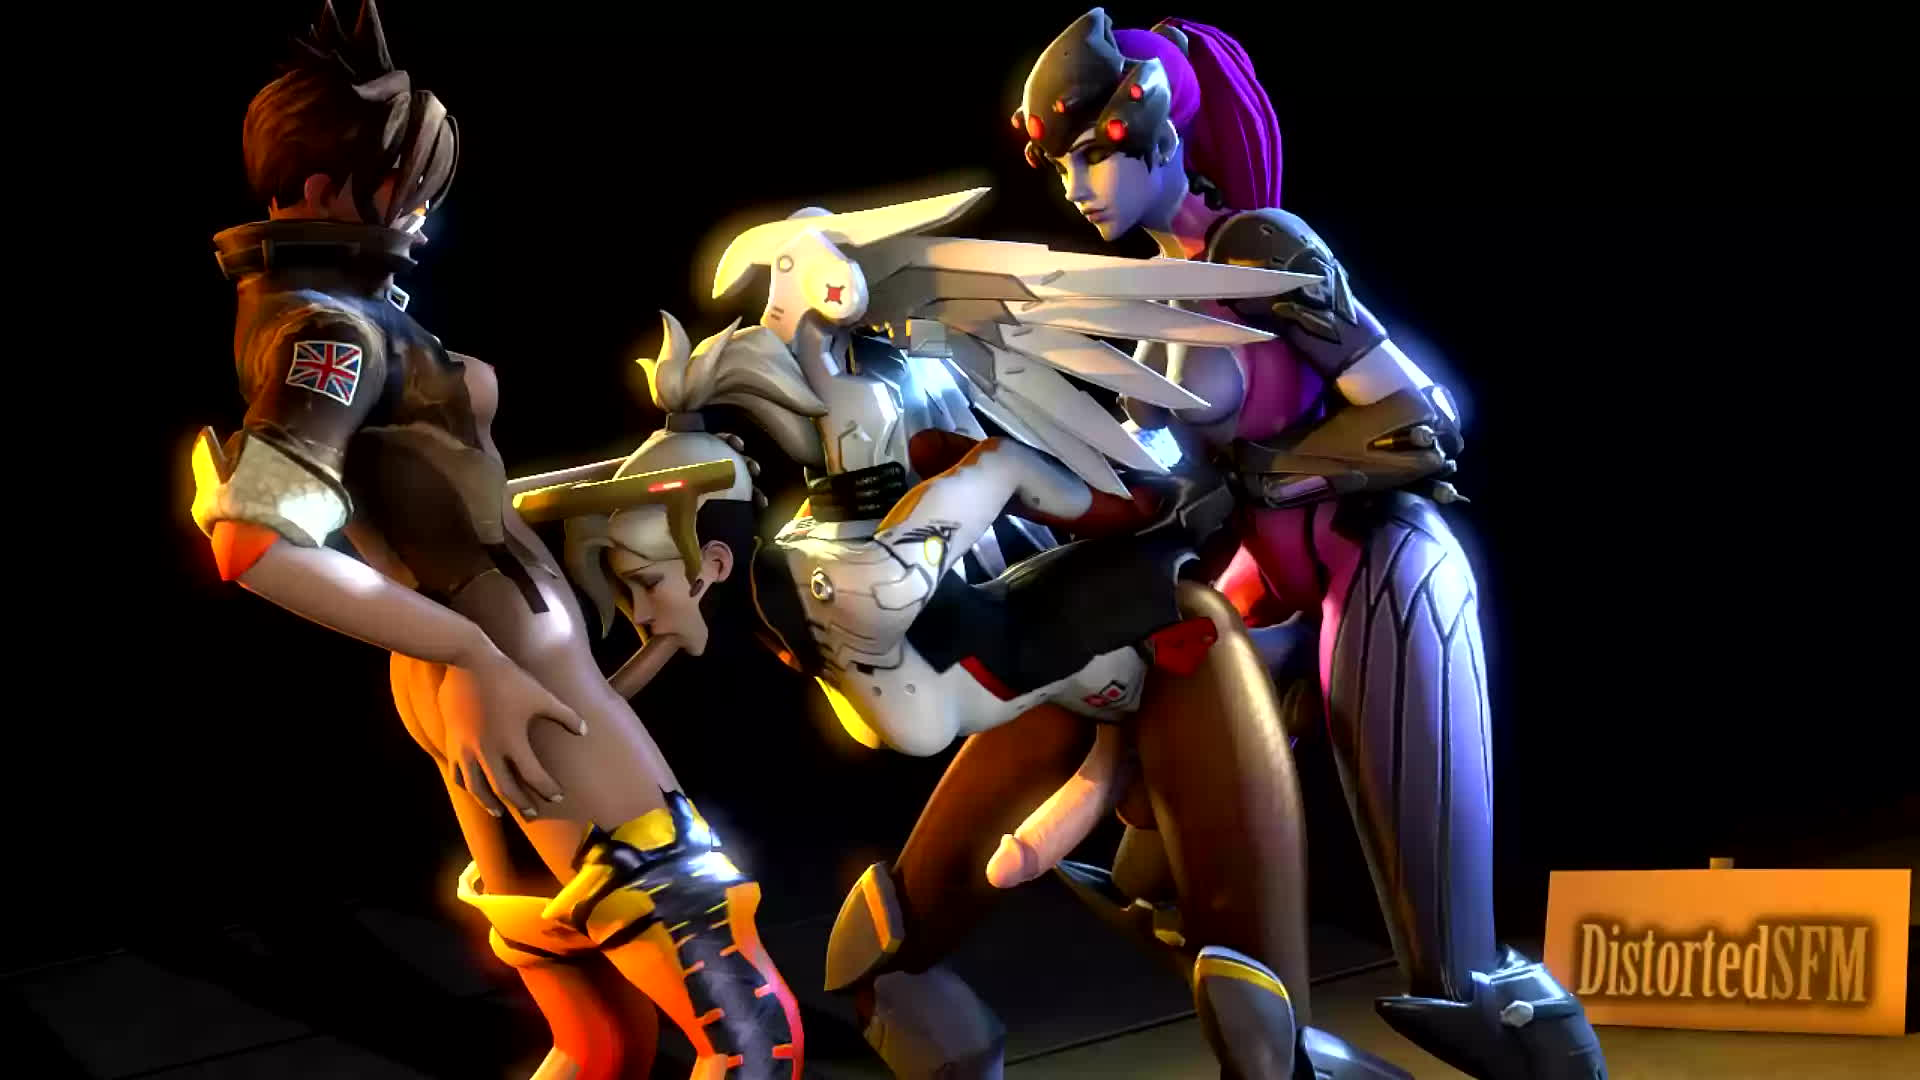 image Overwatch dva fucks herself after losing the game